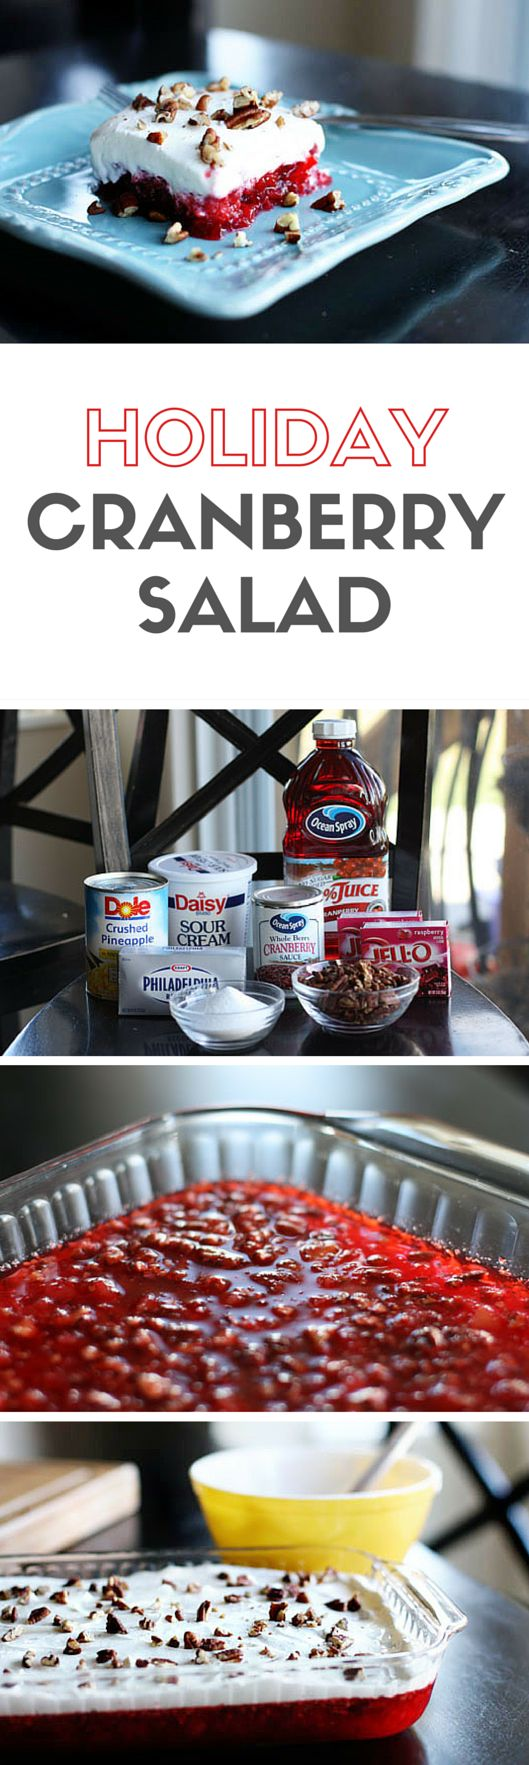 Cranberry Salad -- truthfully, this cranberry jello salad with cream cheese is more of a dessert, but we serve it as a side... It's one of our Thanksgiving traditions! | via @unsophisticook on unsophisticook.com